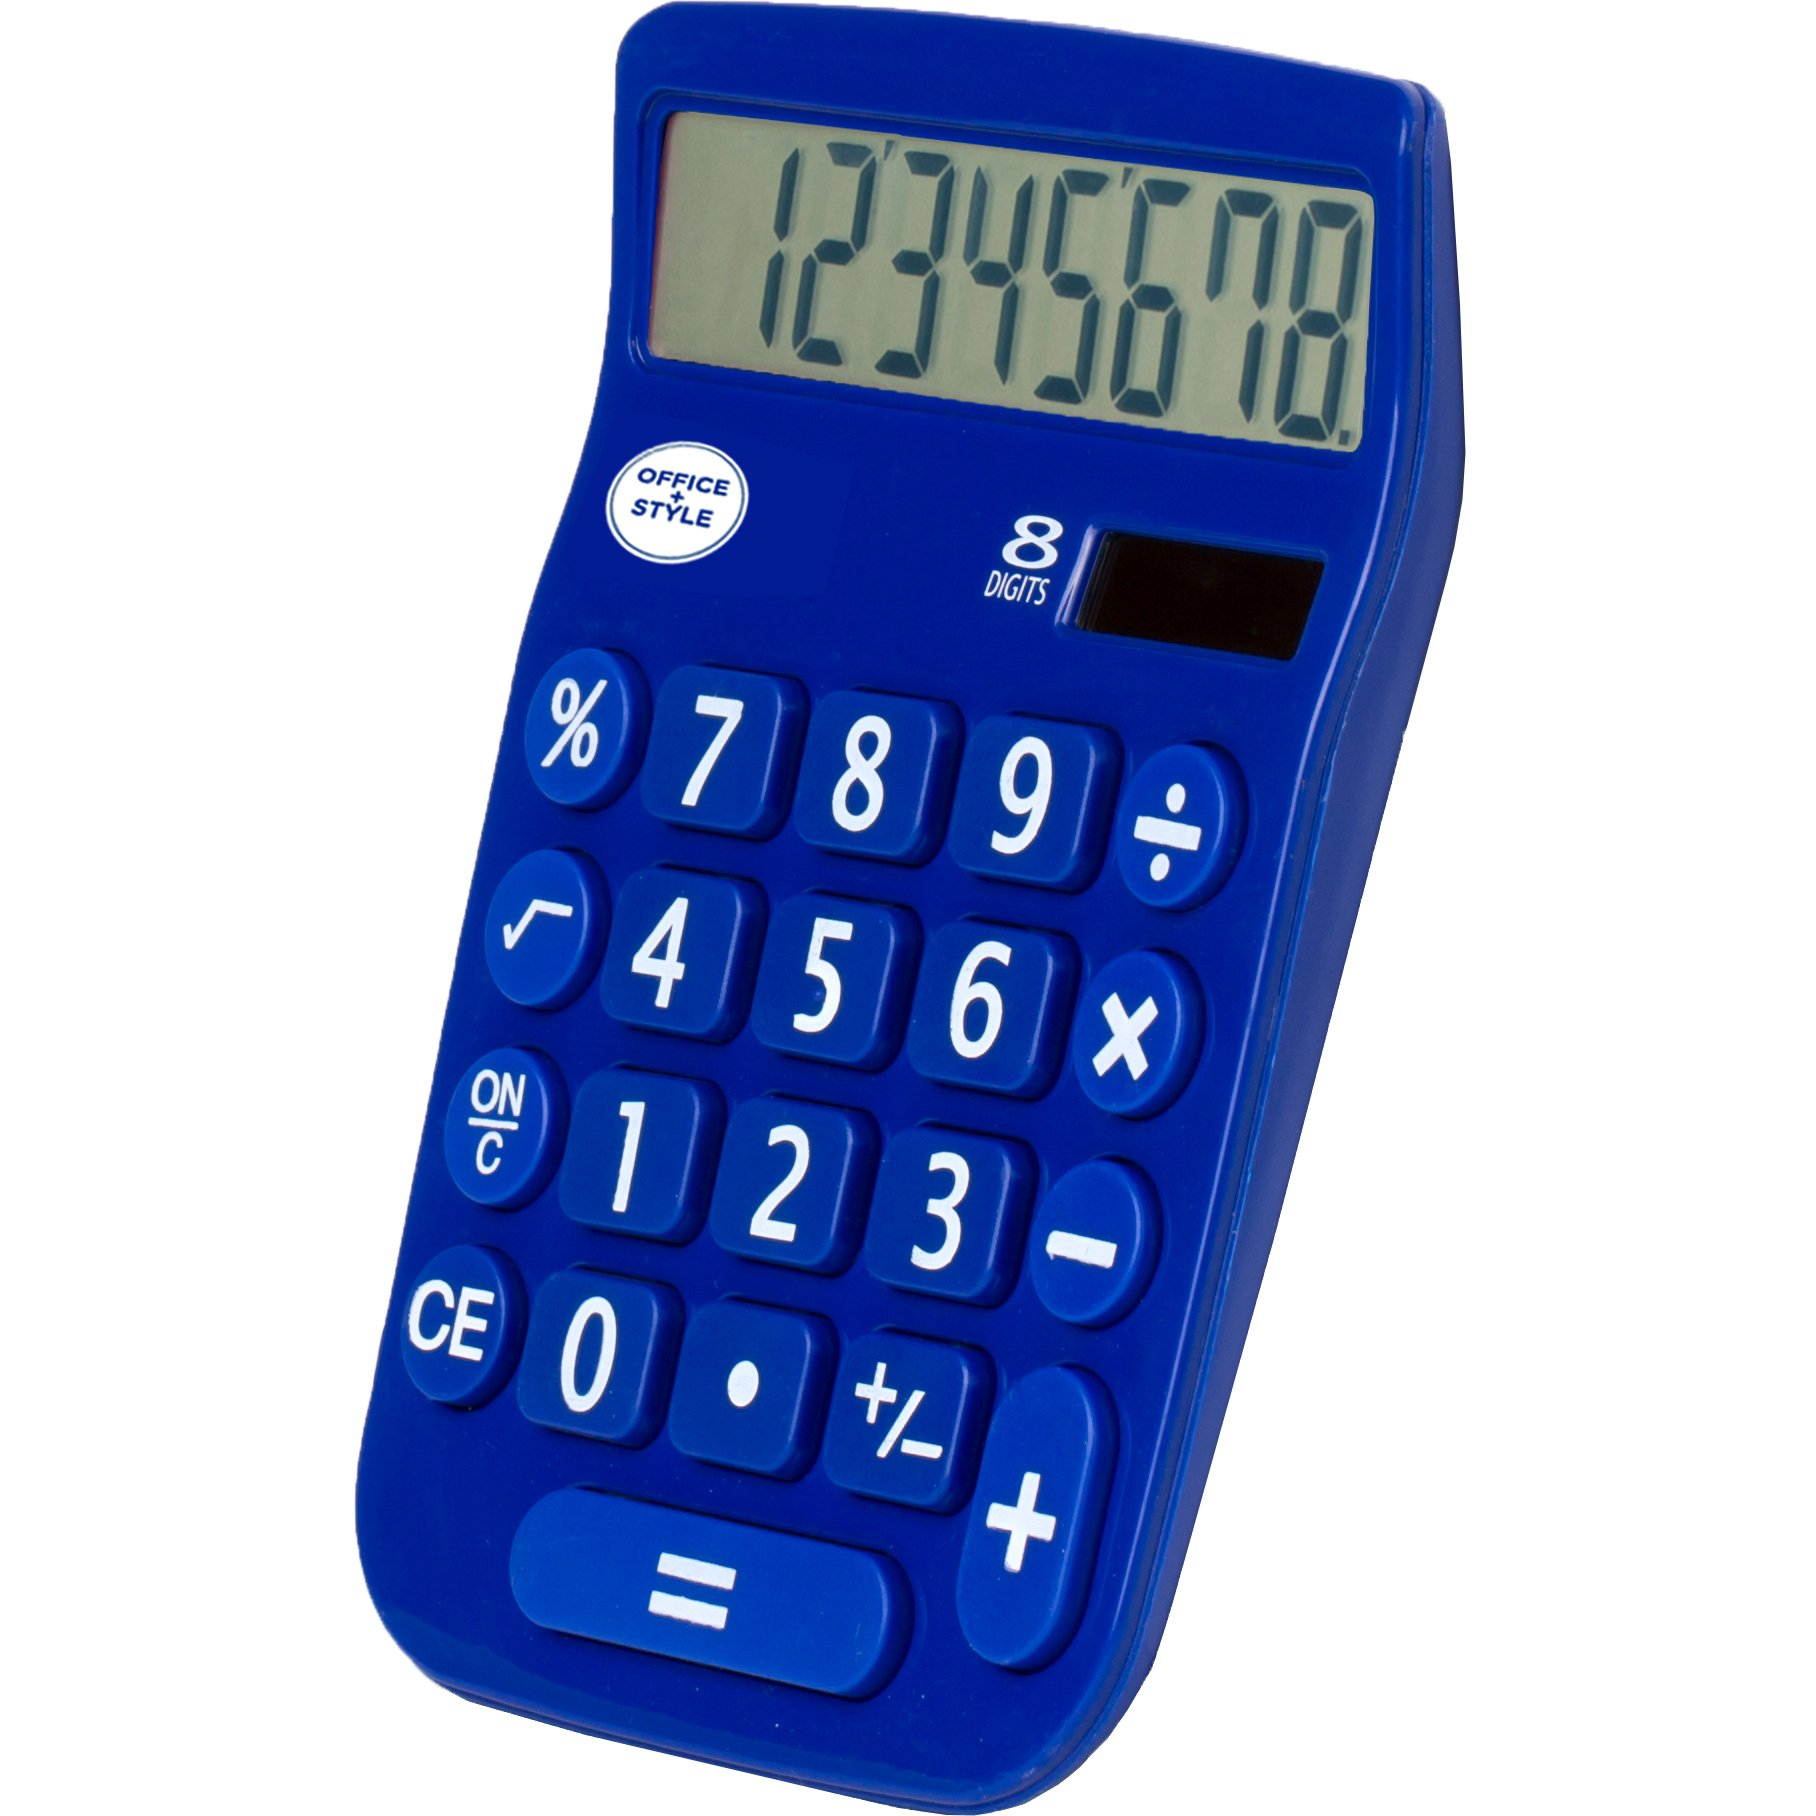 Office + Style 8 Digit Dual Powered Calculator with Large LCD Display, Blue (Pack of 6) by Office Style (Image #2)